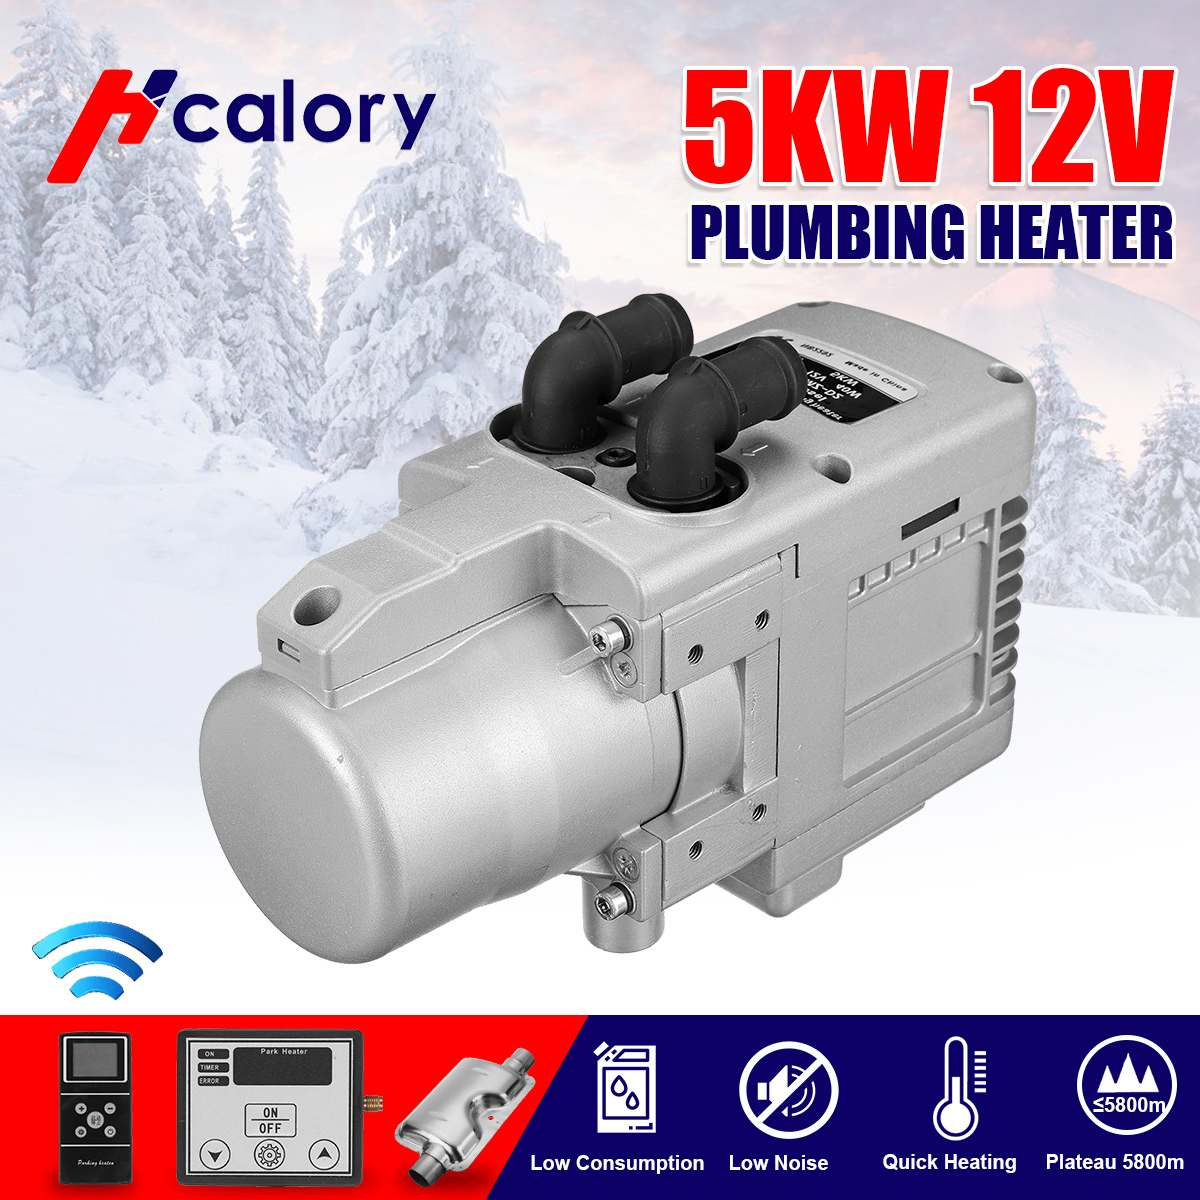 12V 5KW Gasoline Air Heater Water Heater With Cellphone Remote Control LCD Monitor Diesel/Gasoline universal for Motor Trucks